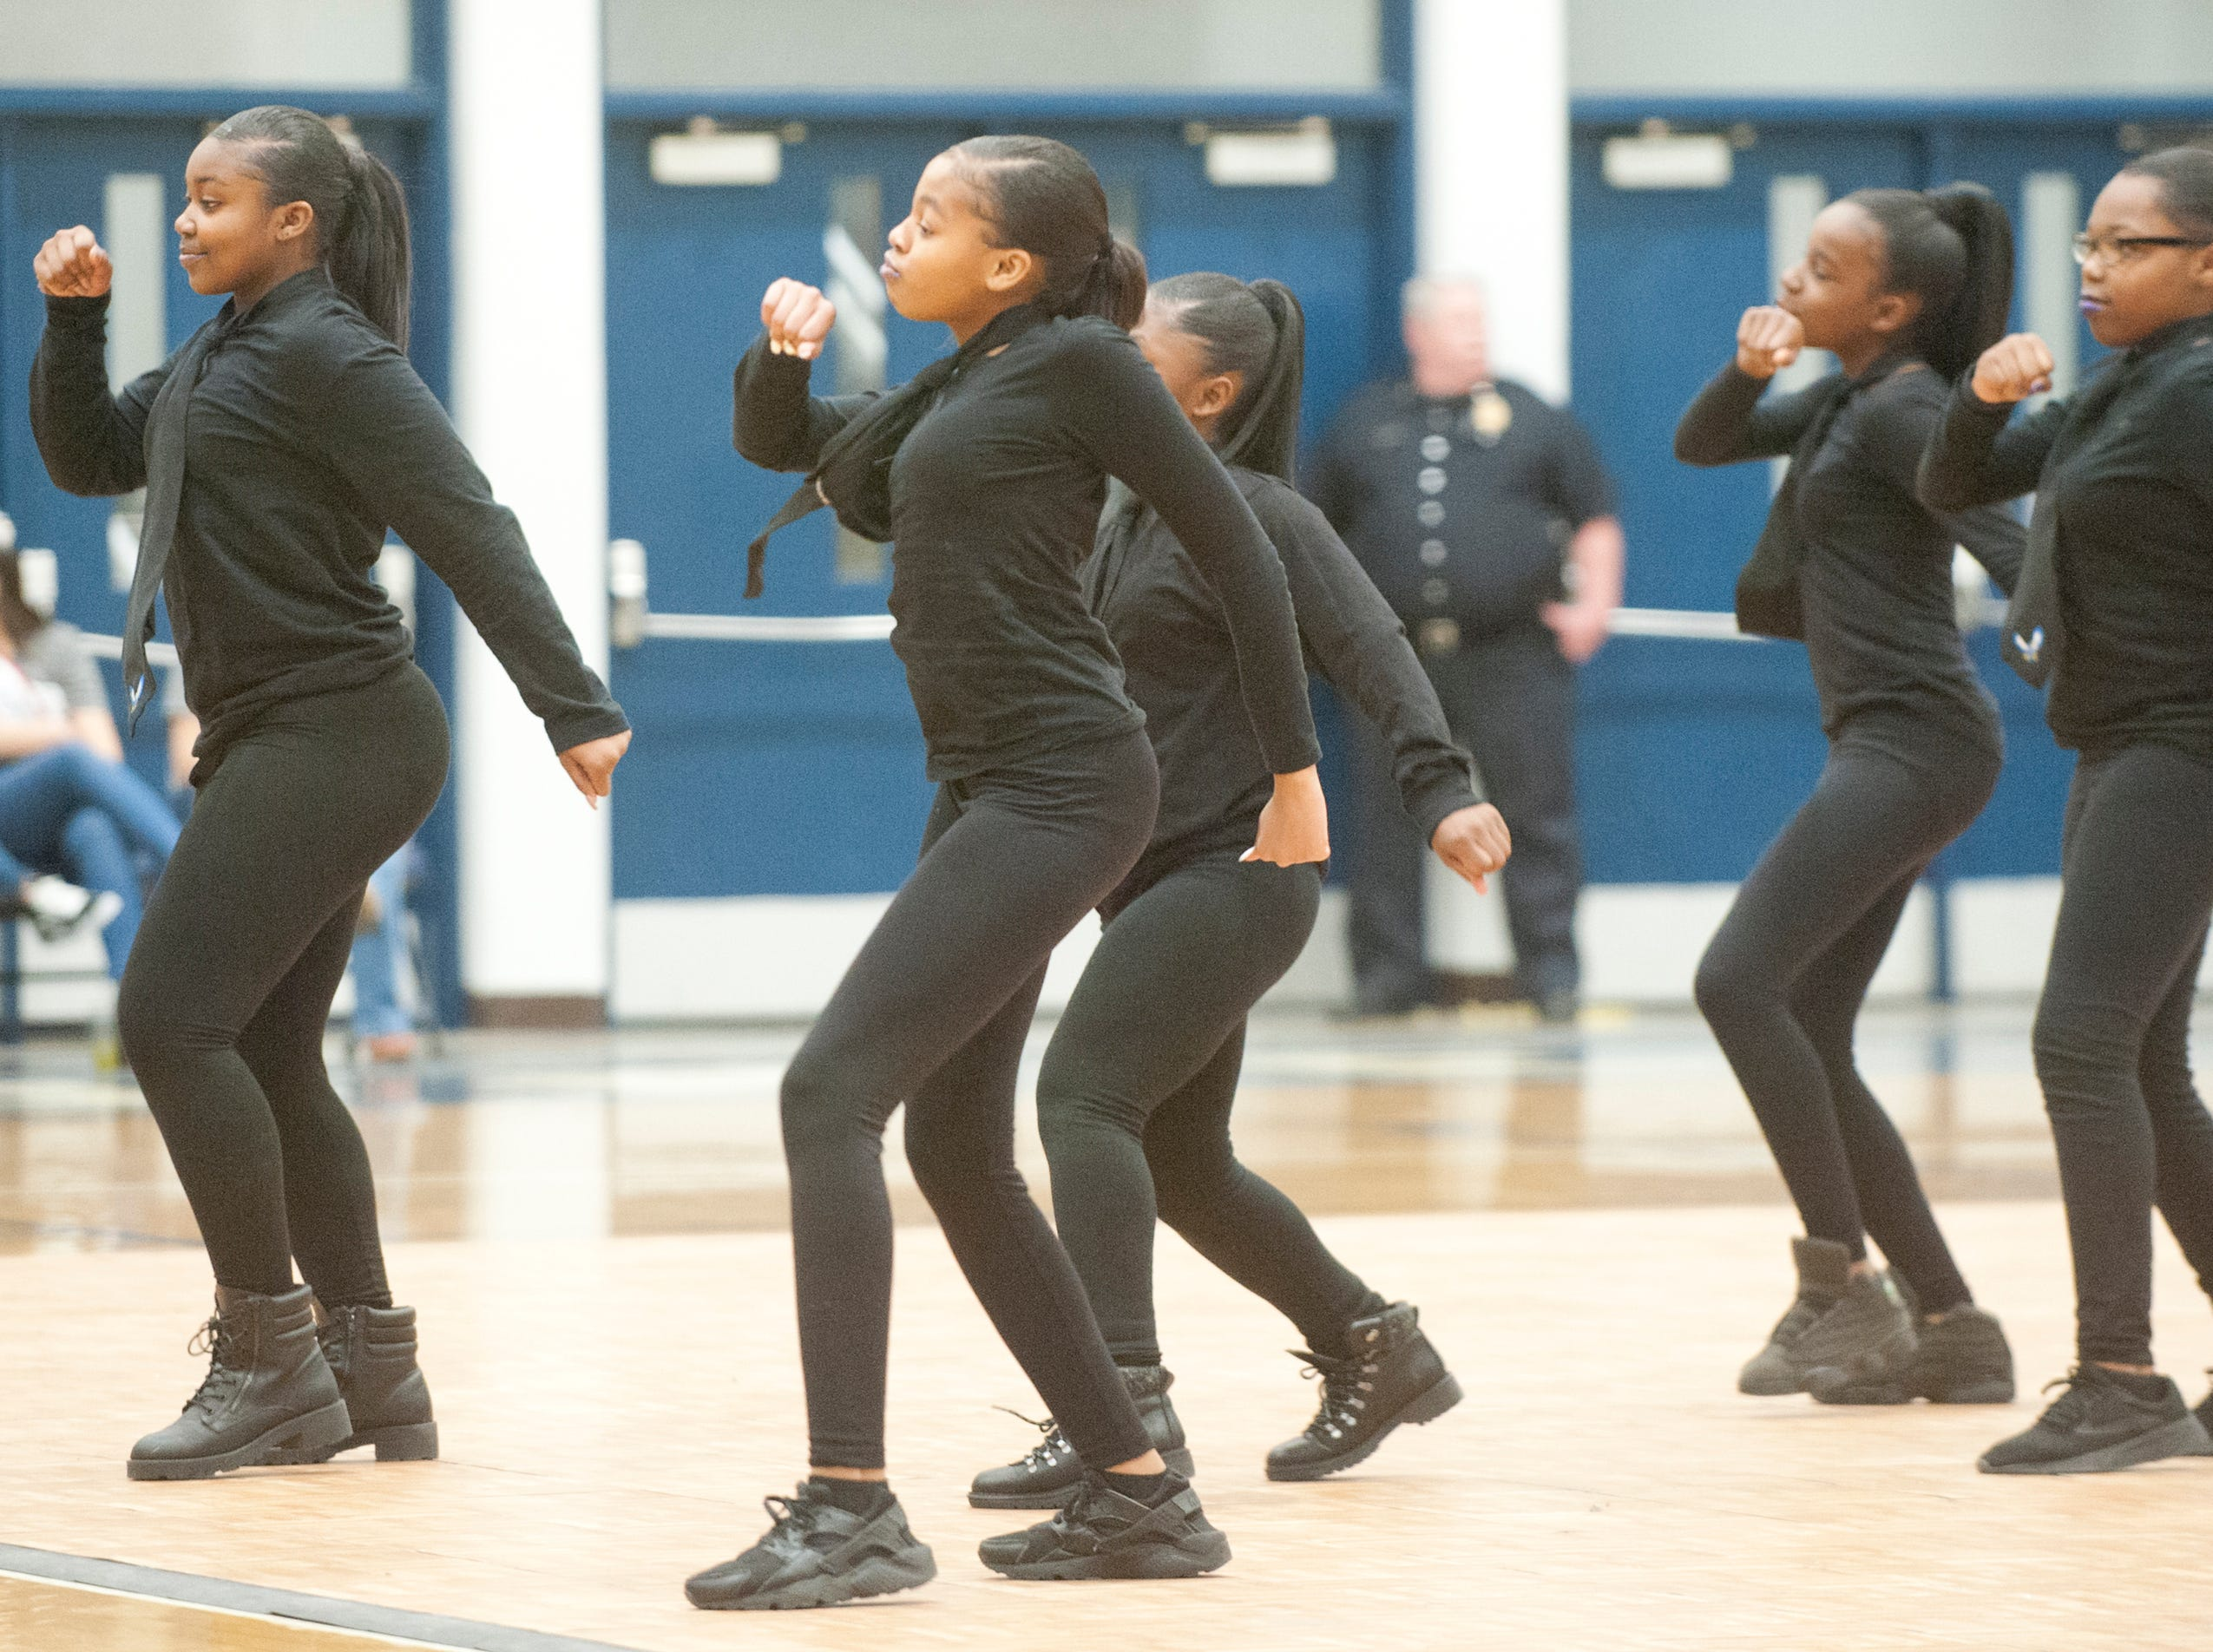 Westport Middle School's step team performs at StepFest, a Kentucky Derby Festival event sponsored by Louisville Parks and Recreation and held at Moore Traditional High School.